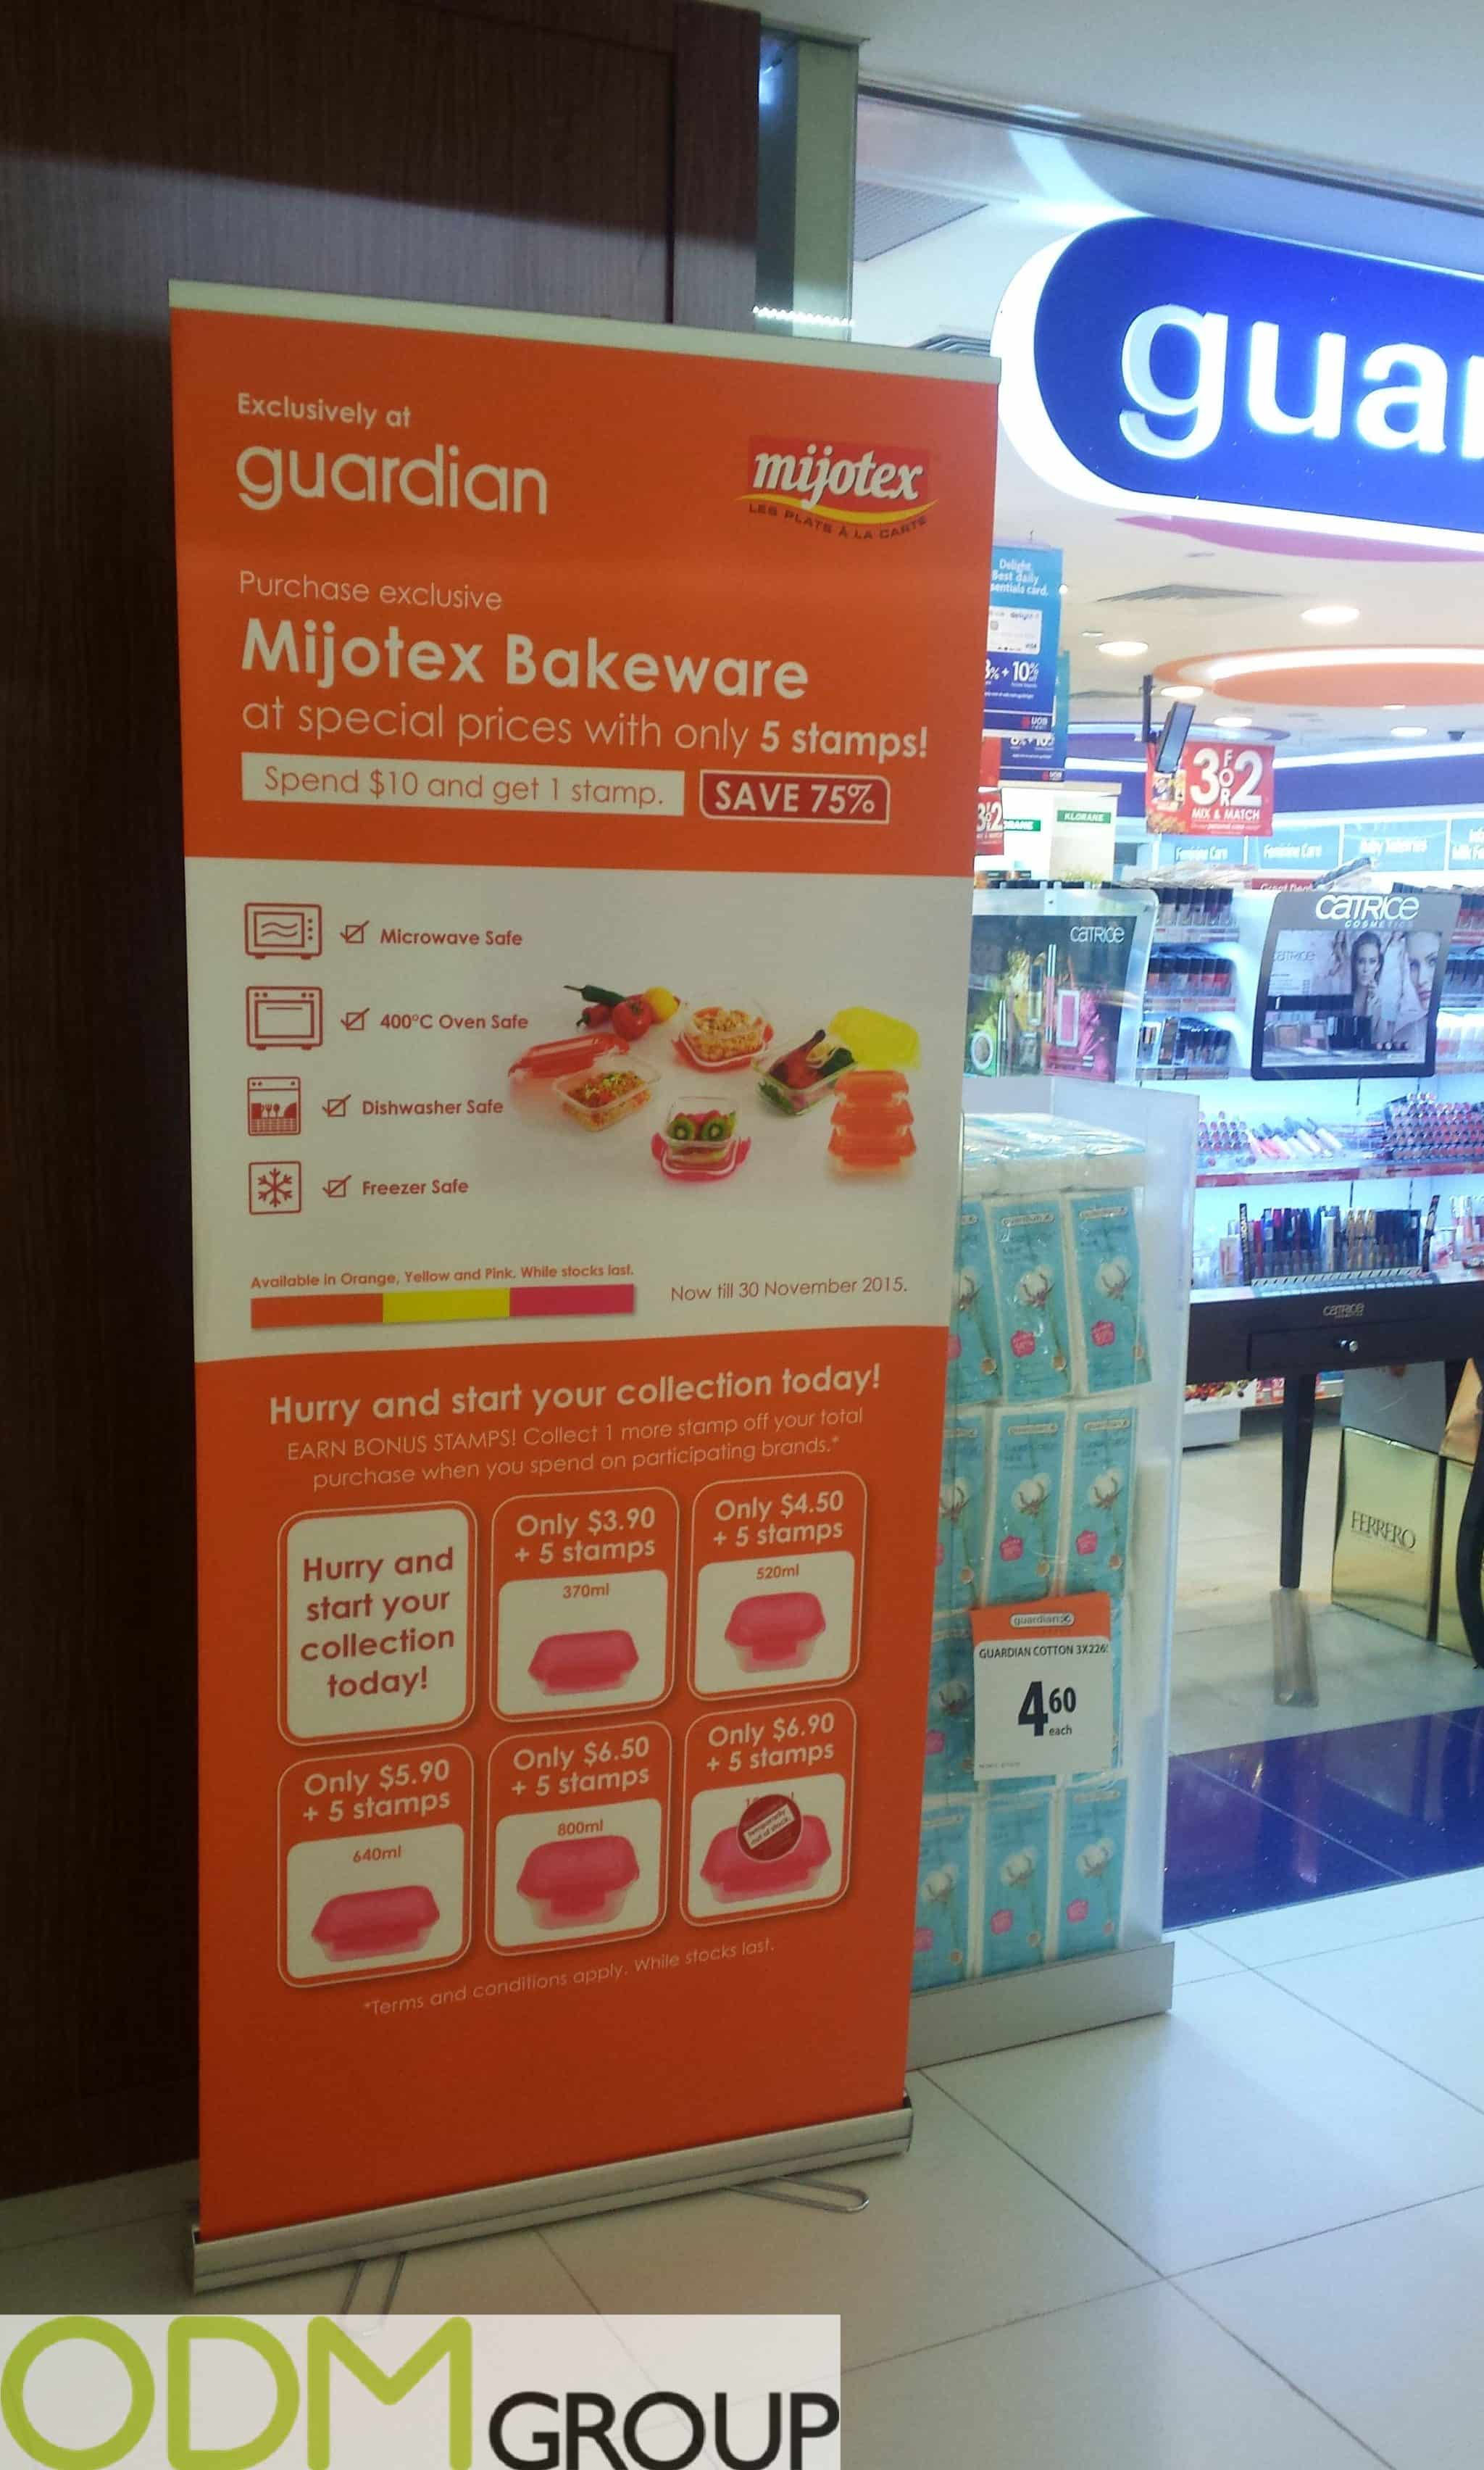 Guardian On Premise Display for Mijotex Bakeware